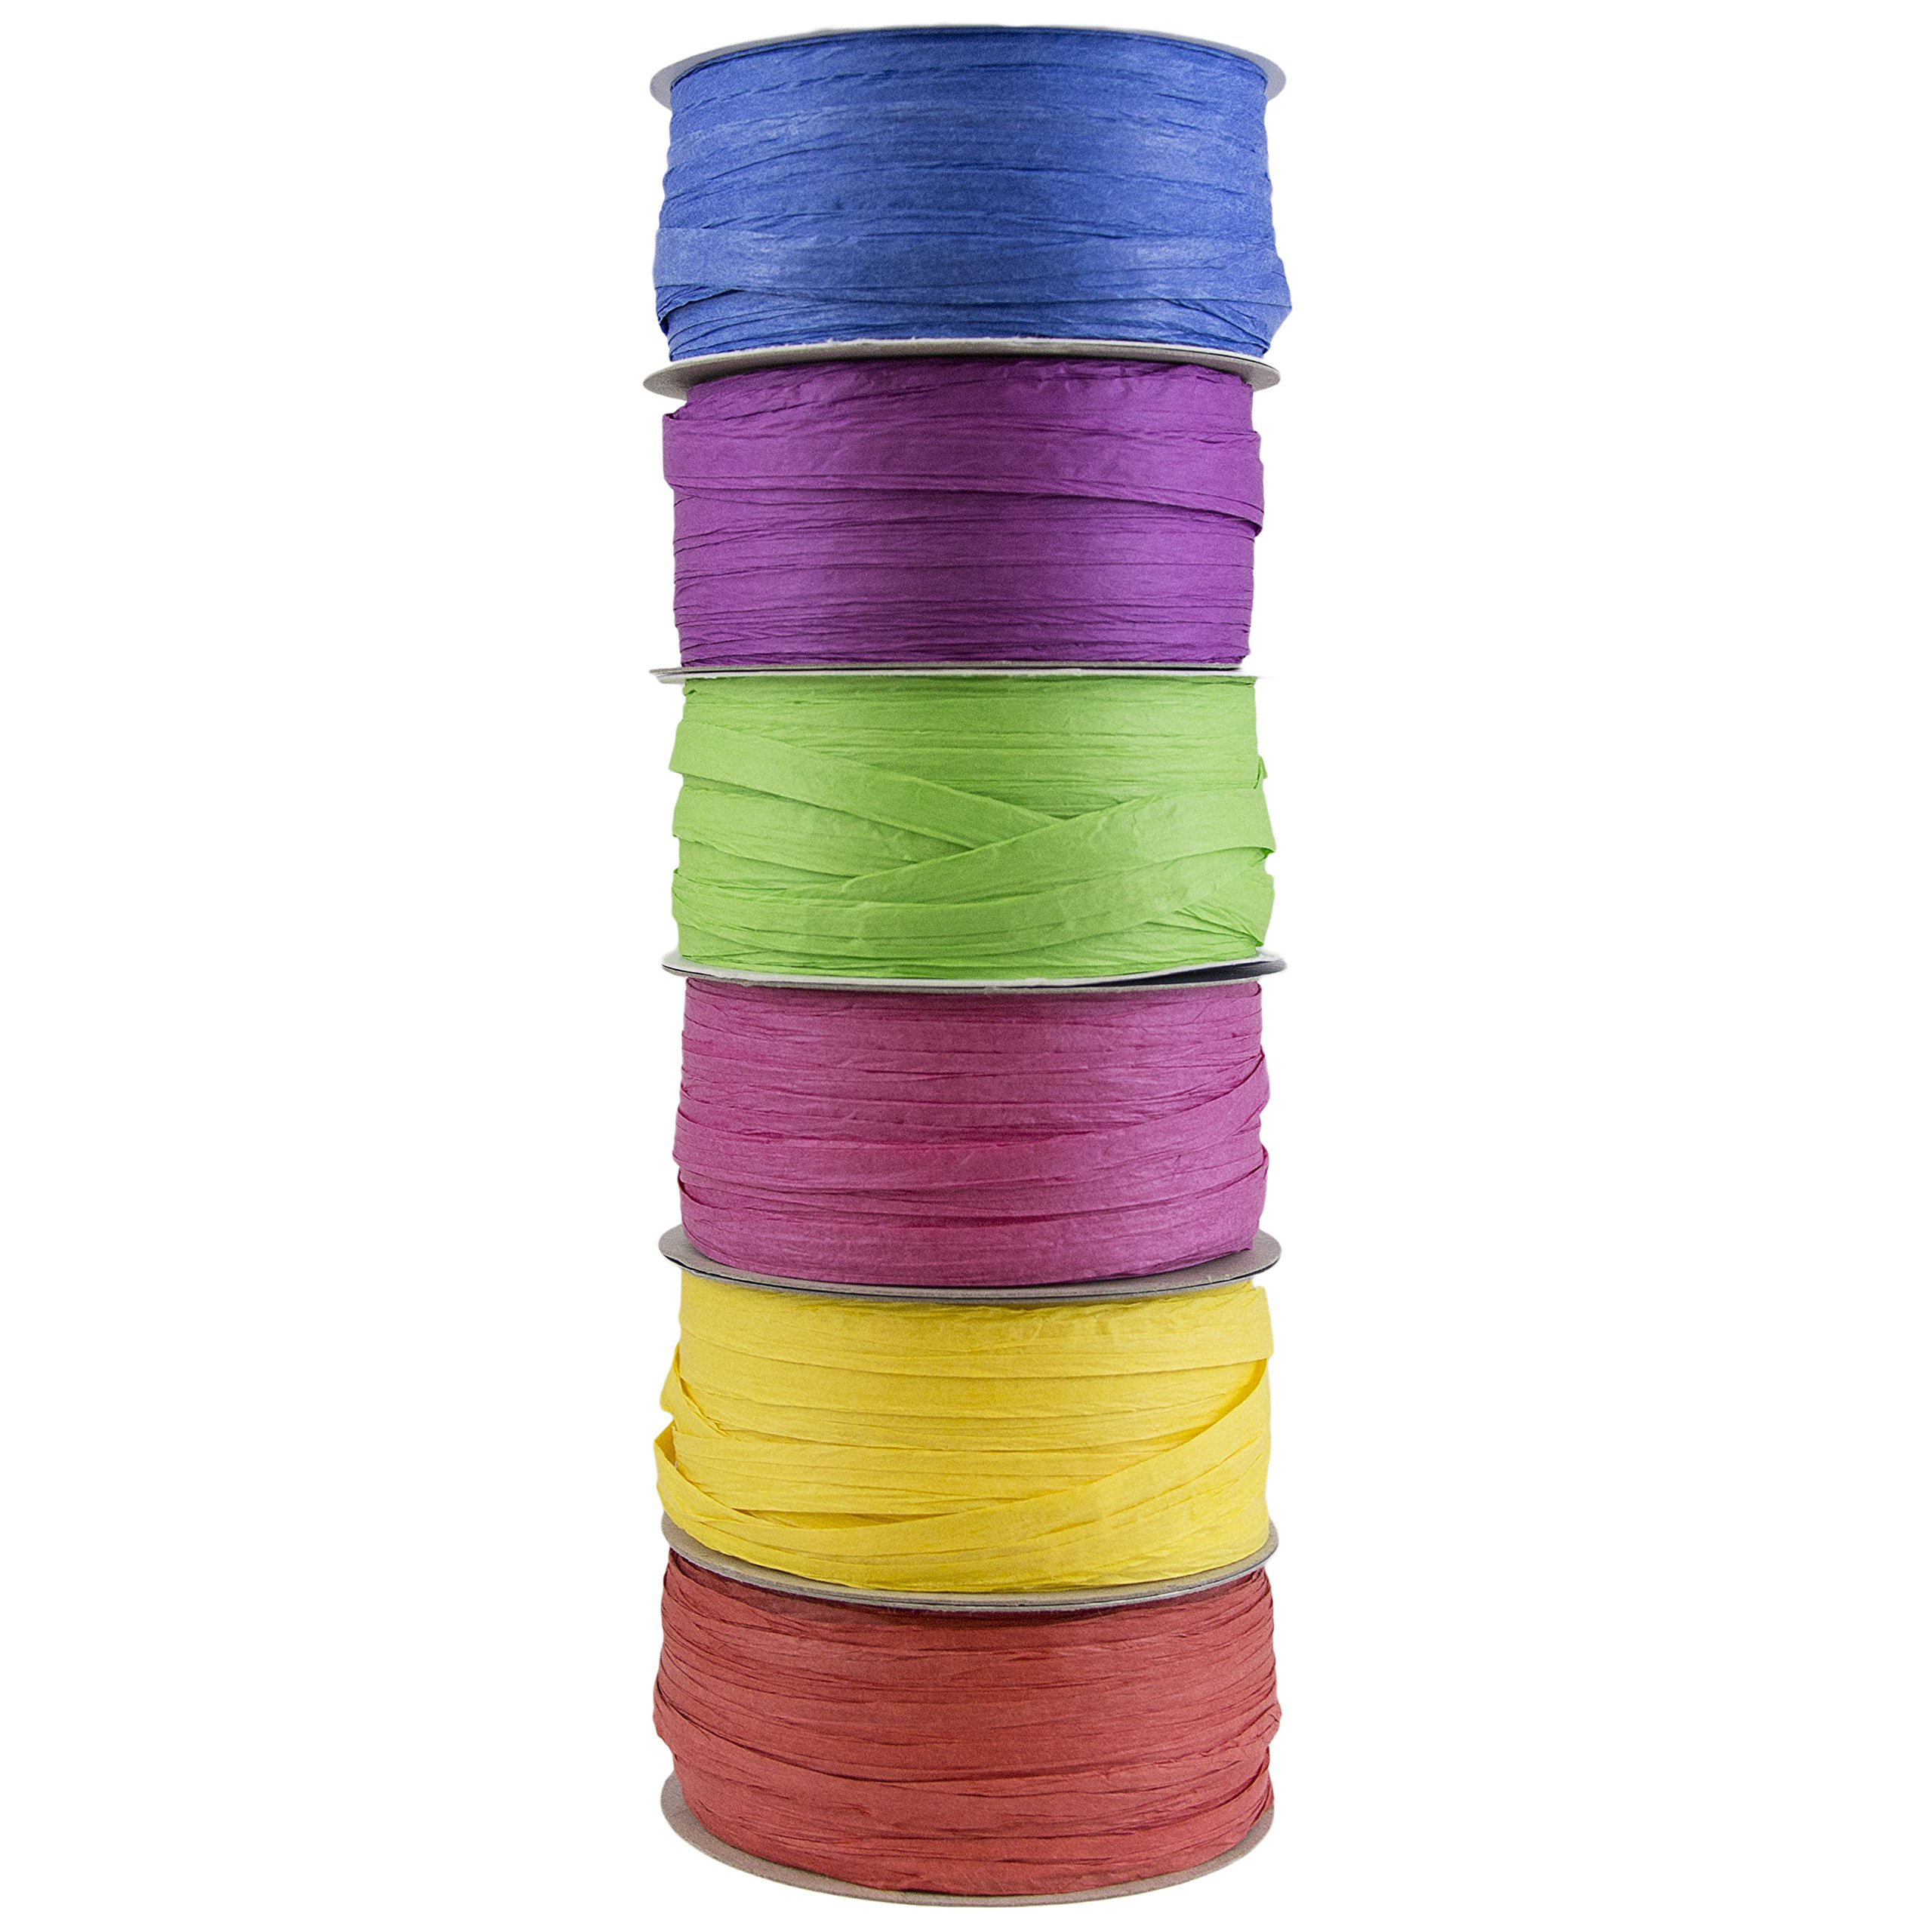 JAM PAPER Assorted Raffia Ribbon Set - 1/4 Inch Wide x 50 Feet - Primary Colors - 6 Wraphia Spools/Pack by JAM Paper